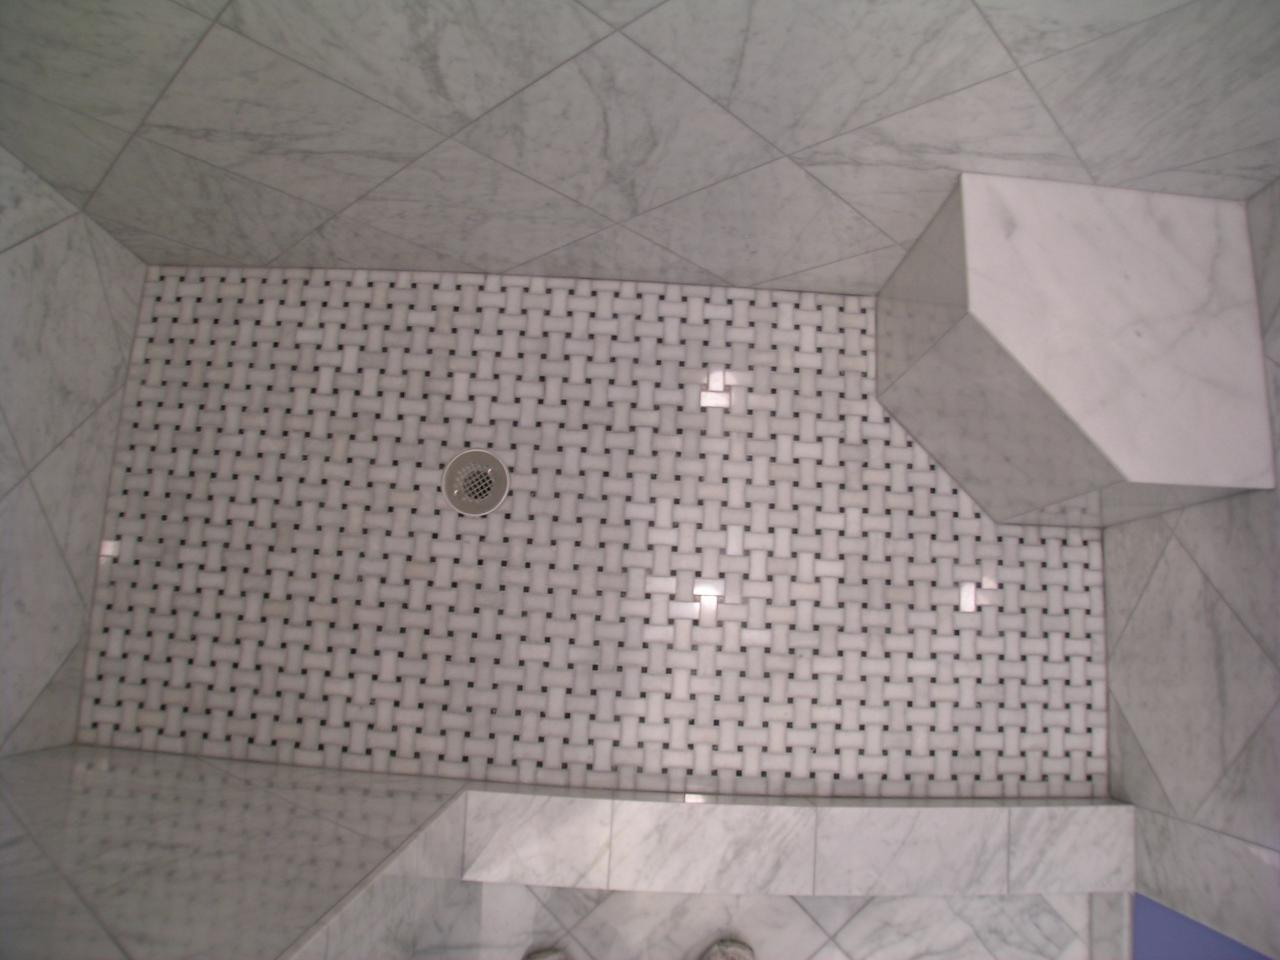 Shower Floor Tiles Which Why And How: 23 Nice Ideas And Pictures Of Basketweave Bathroom Tile